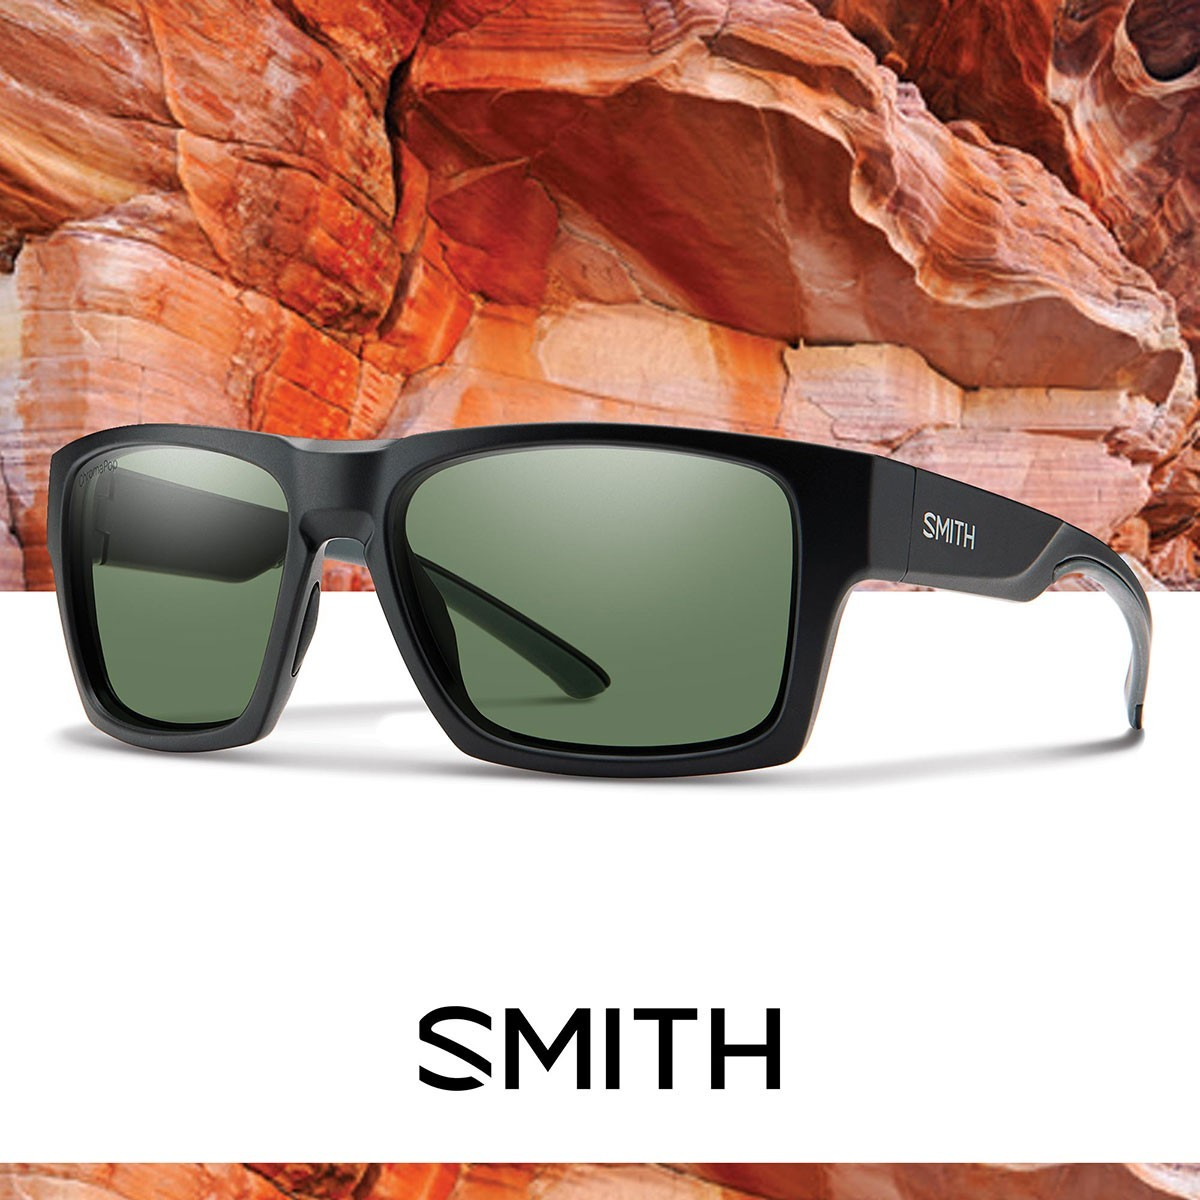 SMITH OUTLIER XL 2 Matte Black - Изображение - AQUAMATRIX